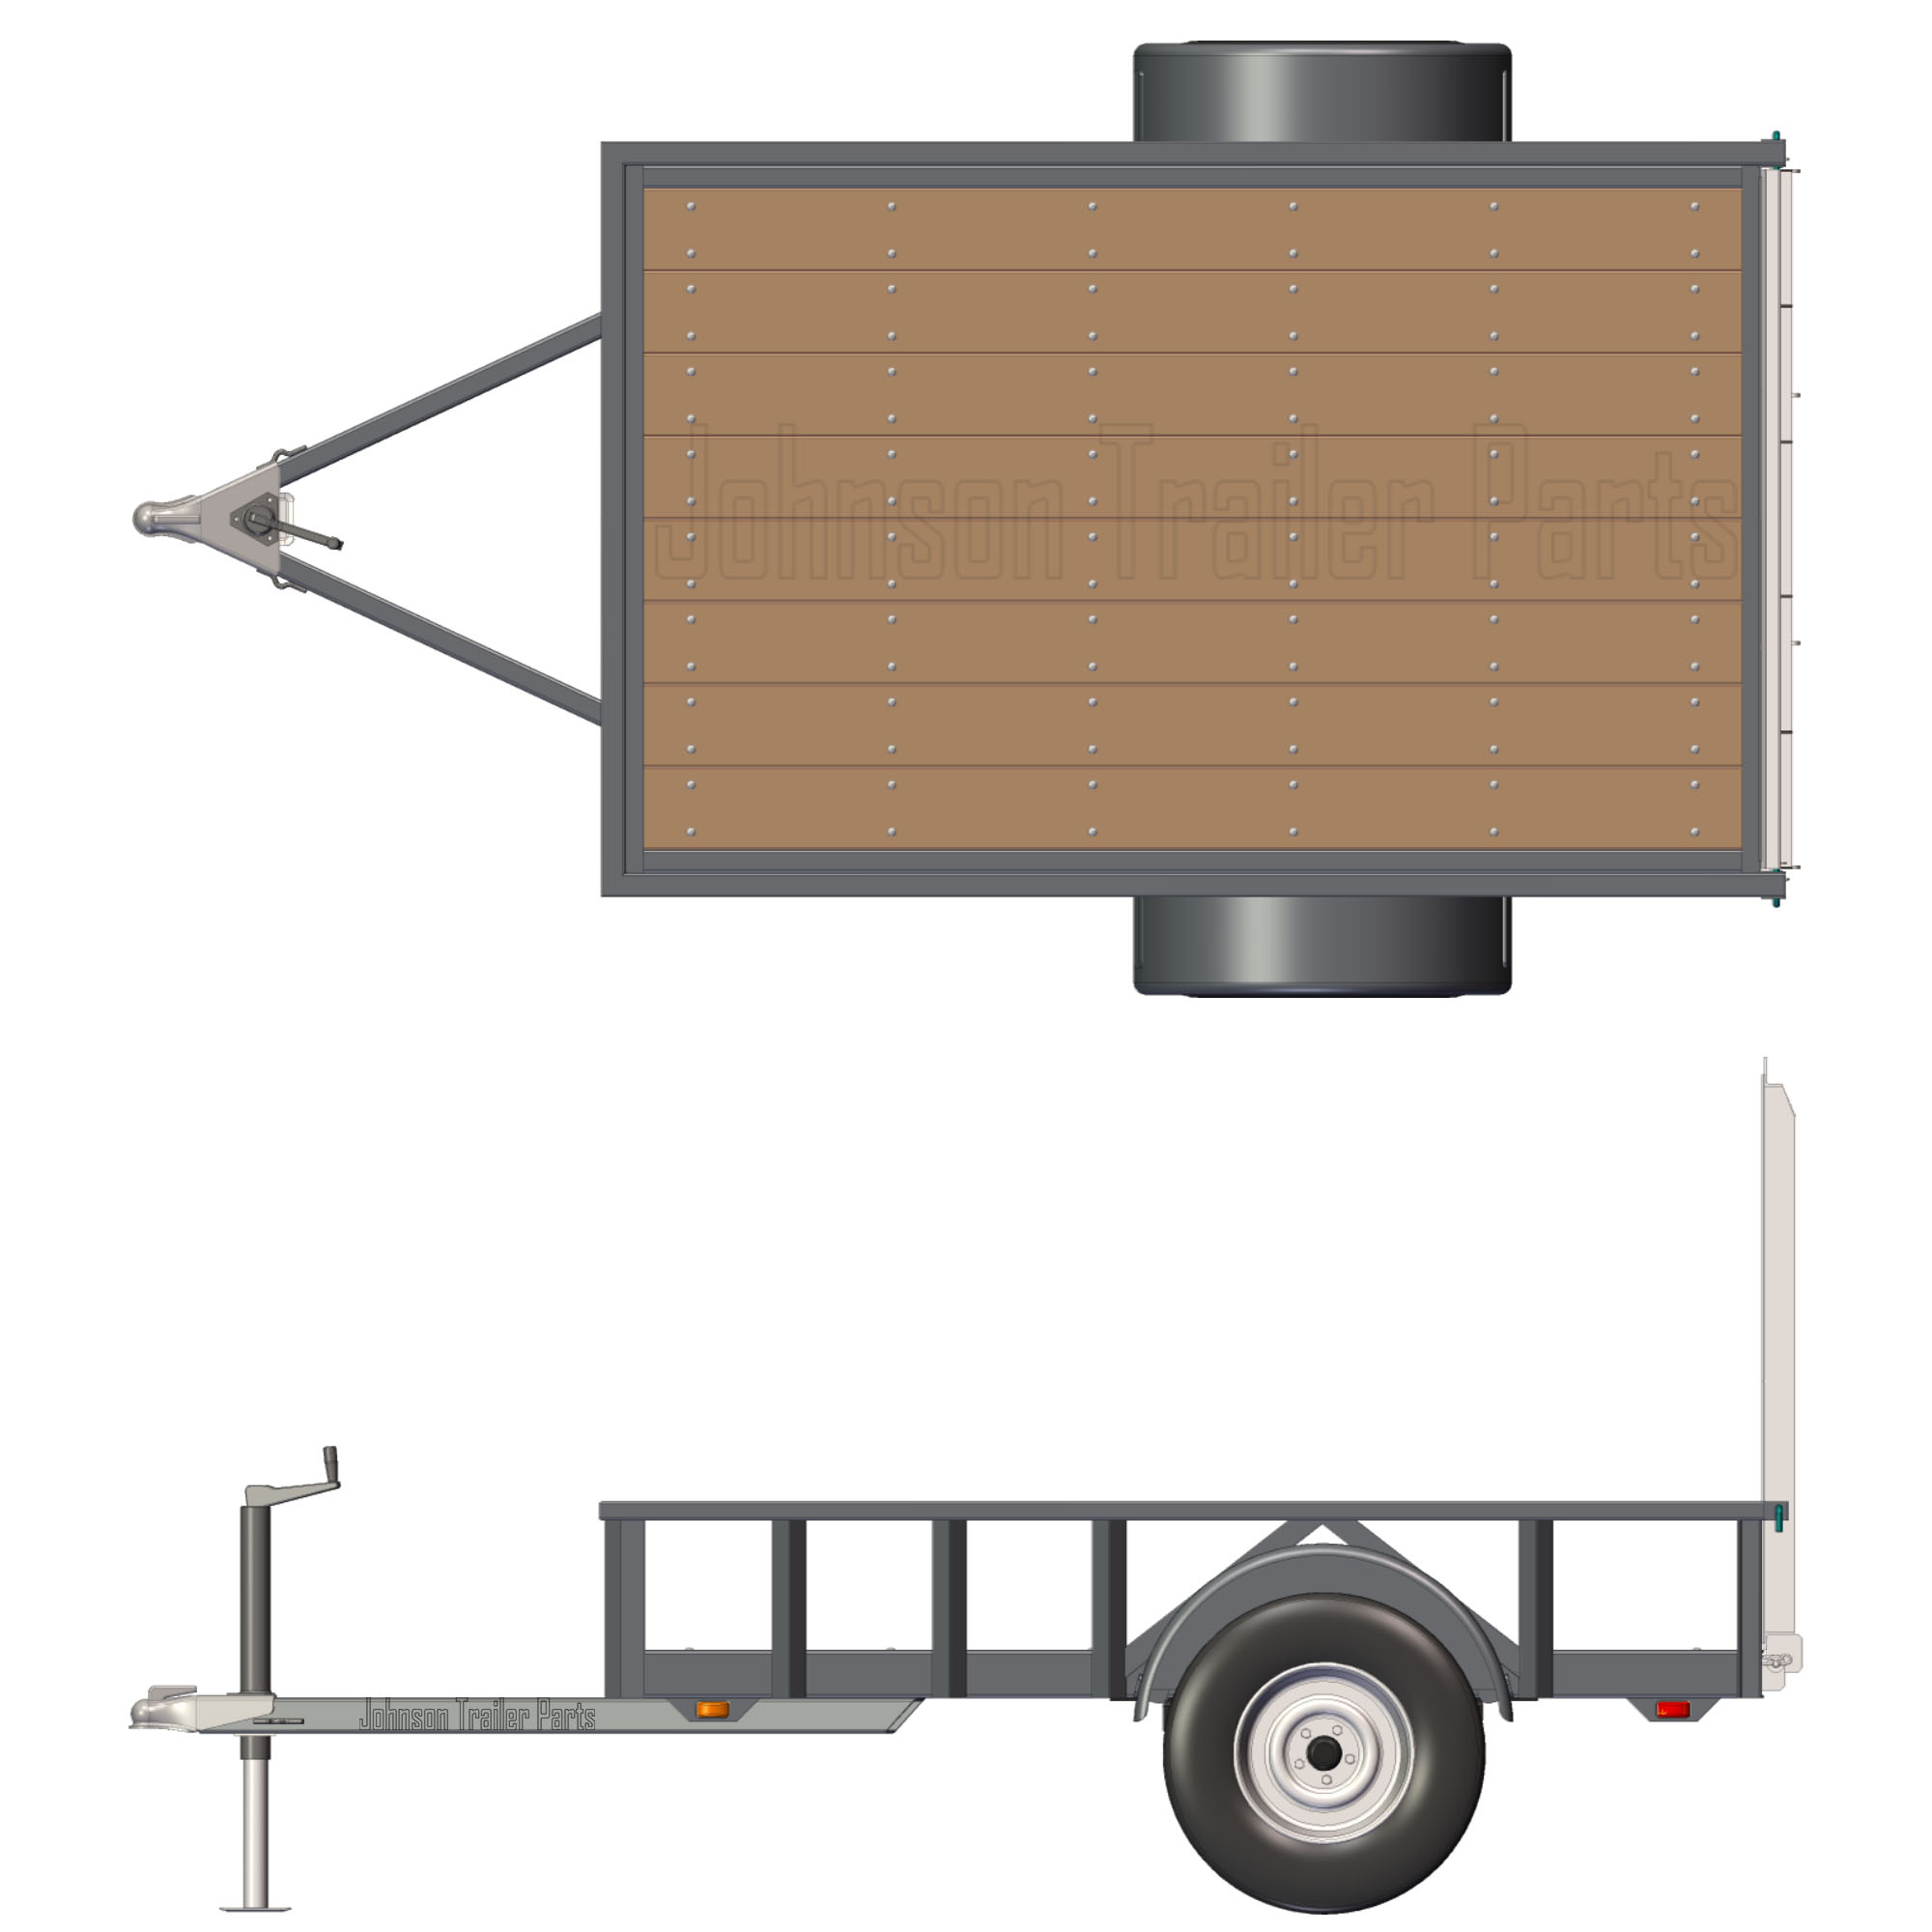 Utility Trailers: 5' X 8' Utility Trailer Plans Blueprints